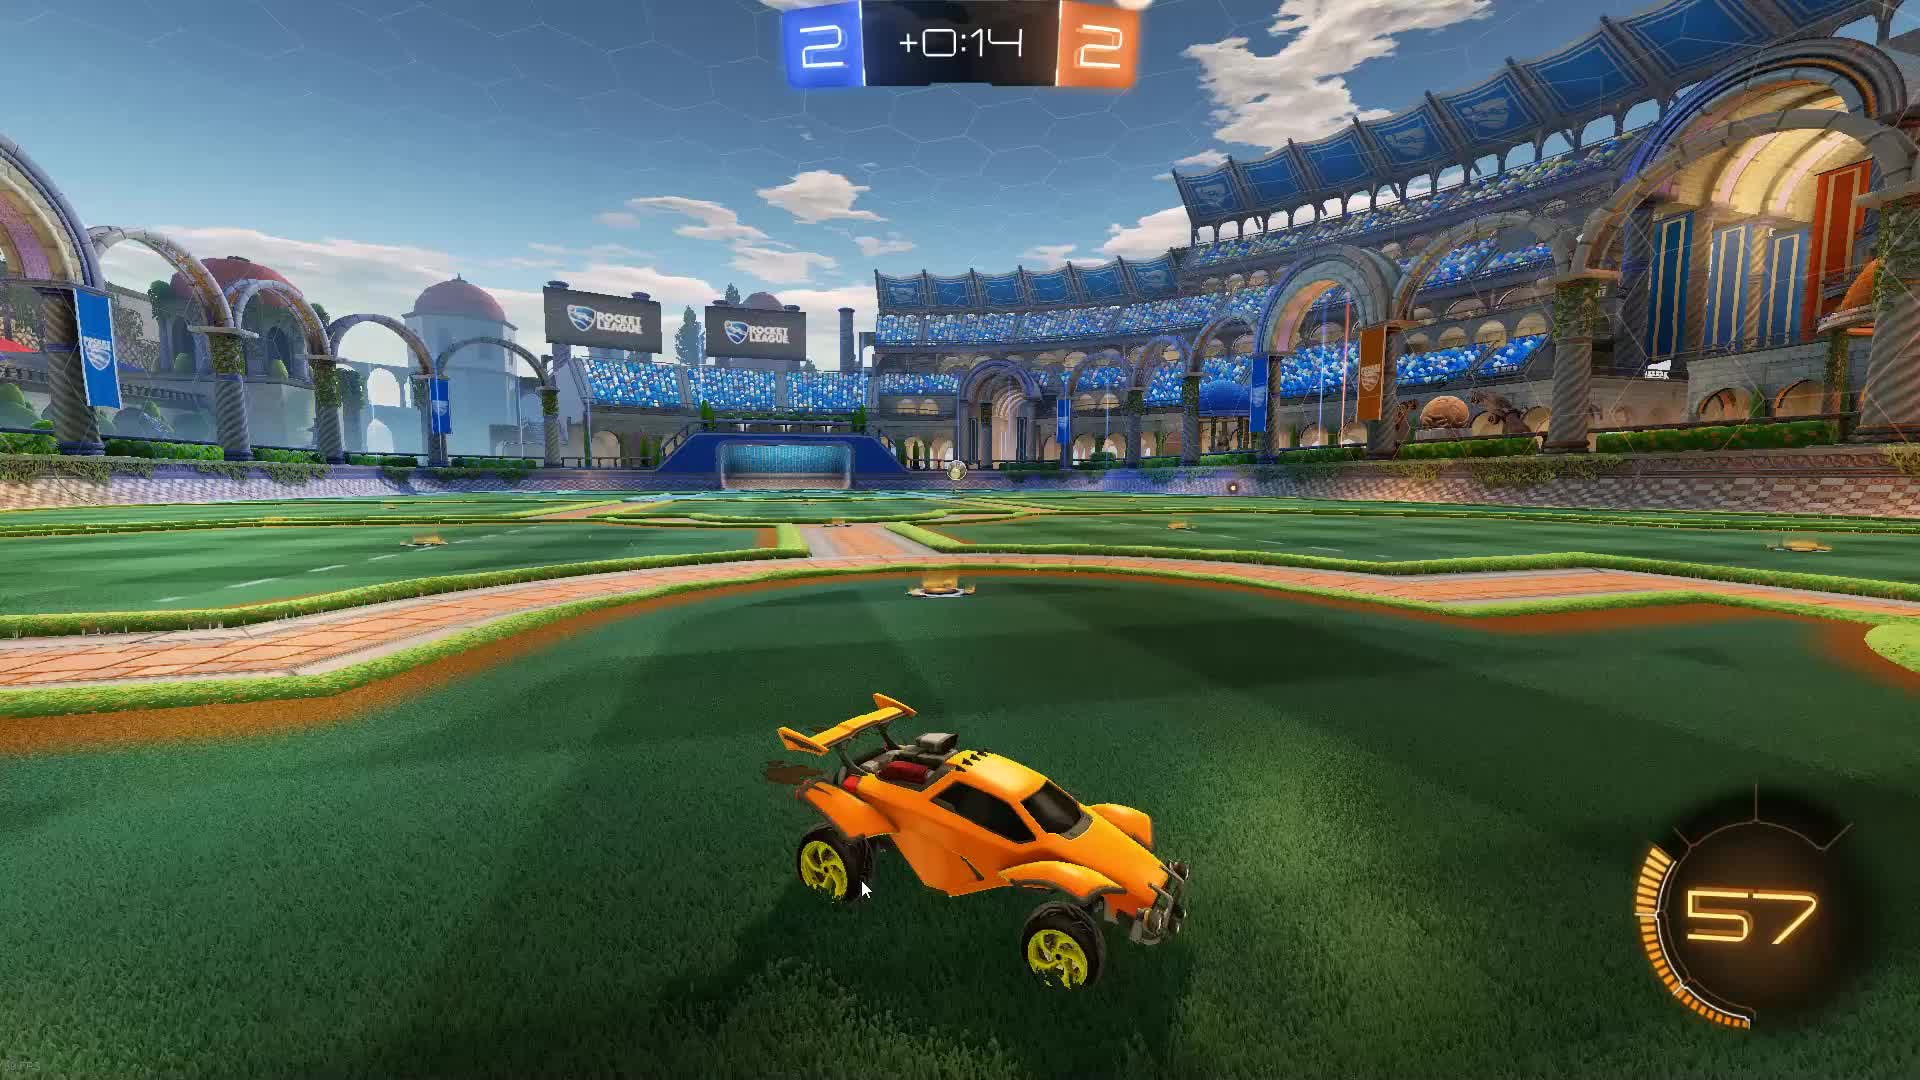 Rocket League Gods on my side GIFs